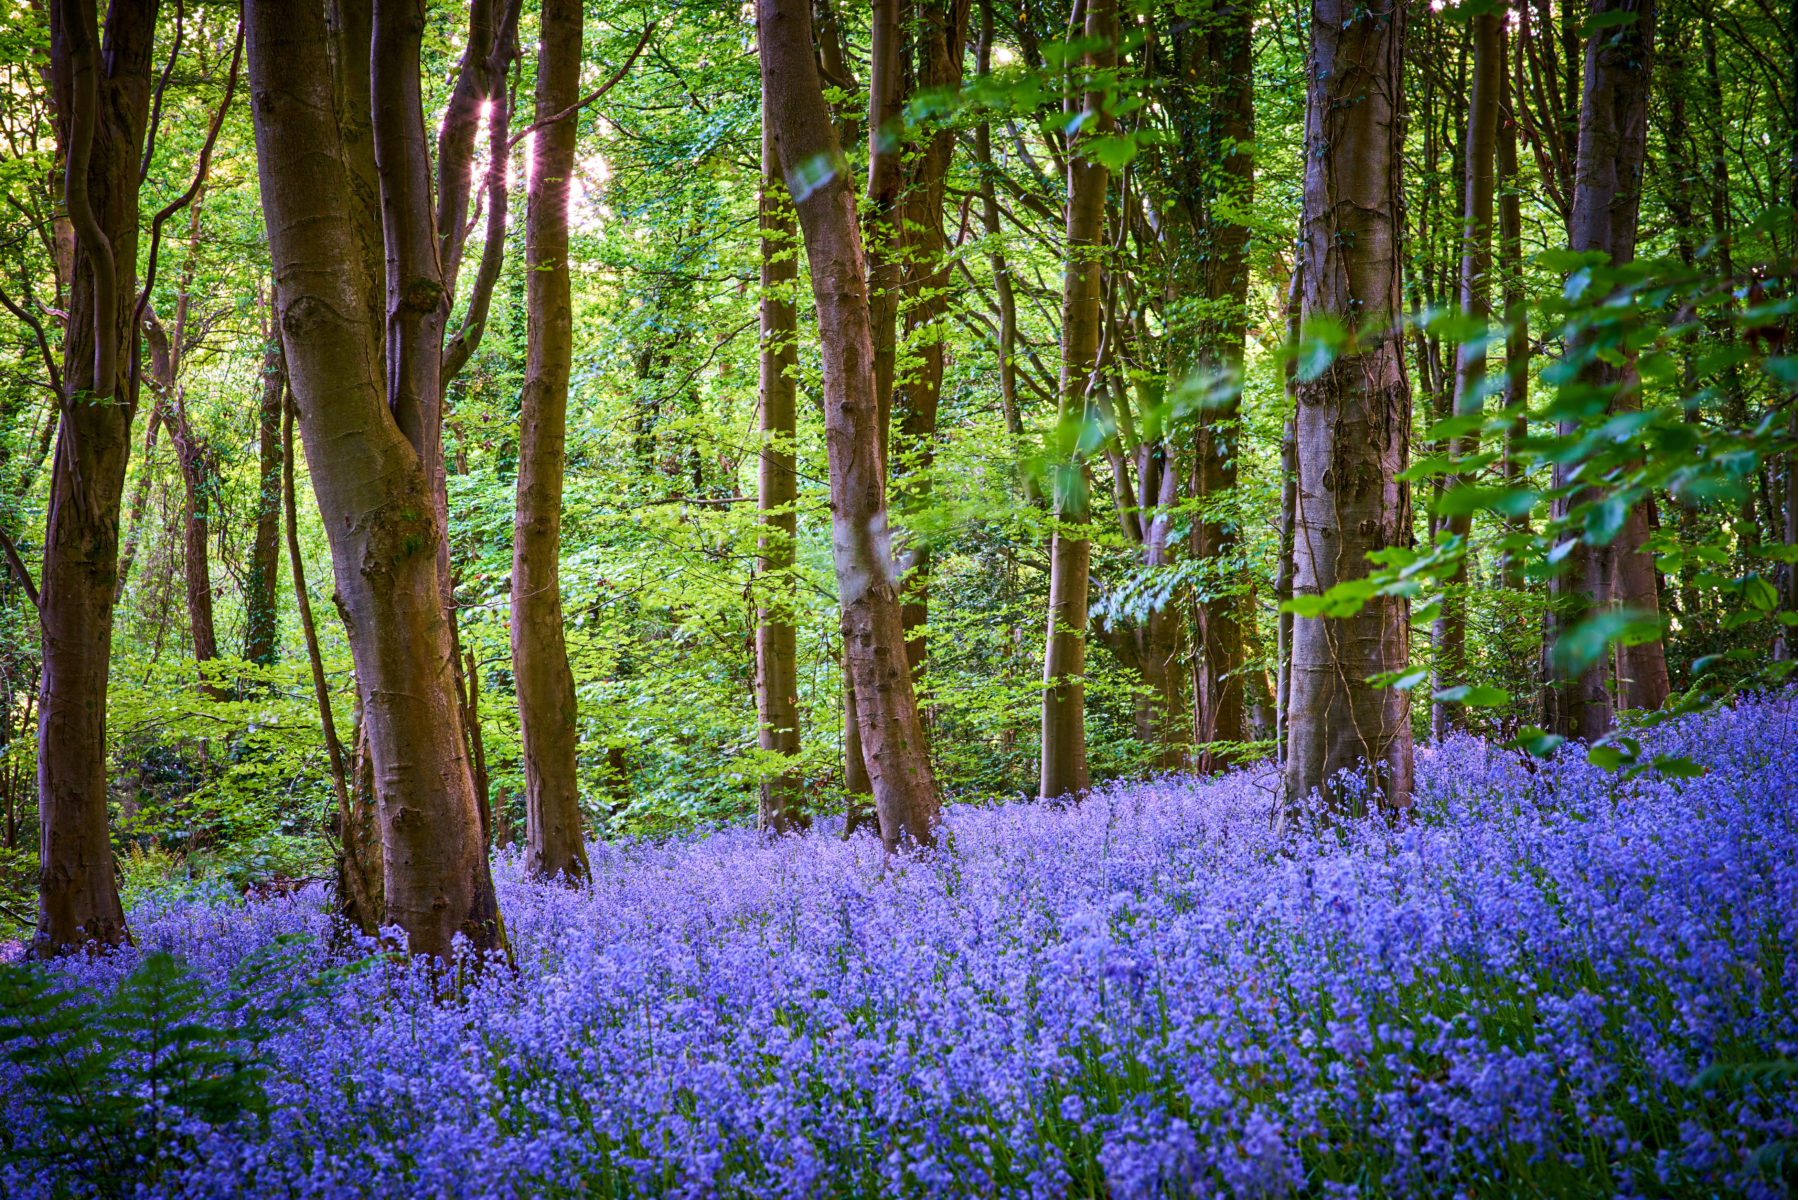 A forest of English bluebells